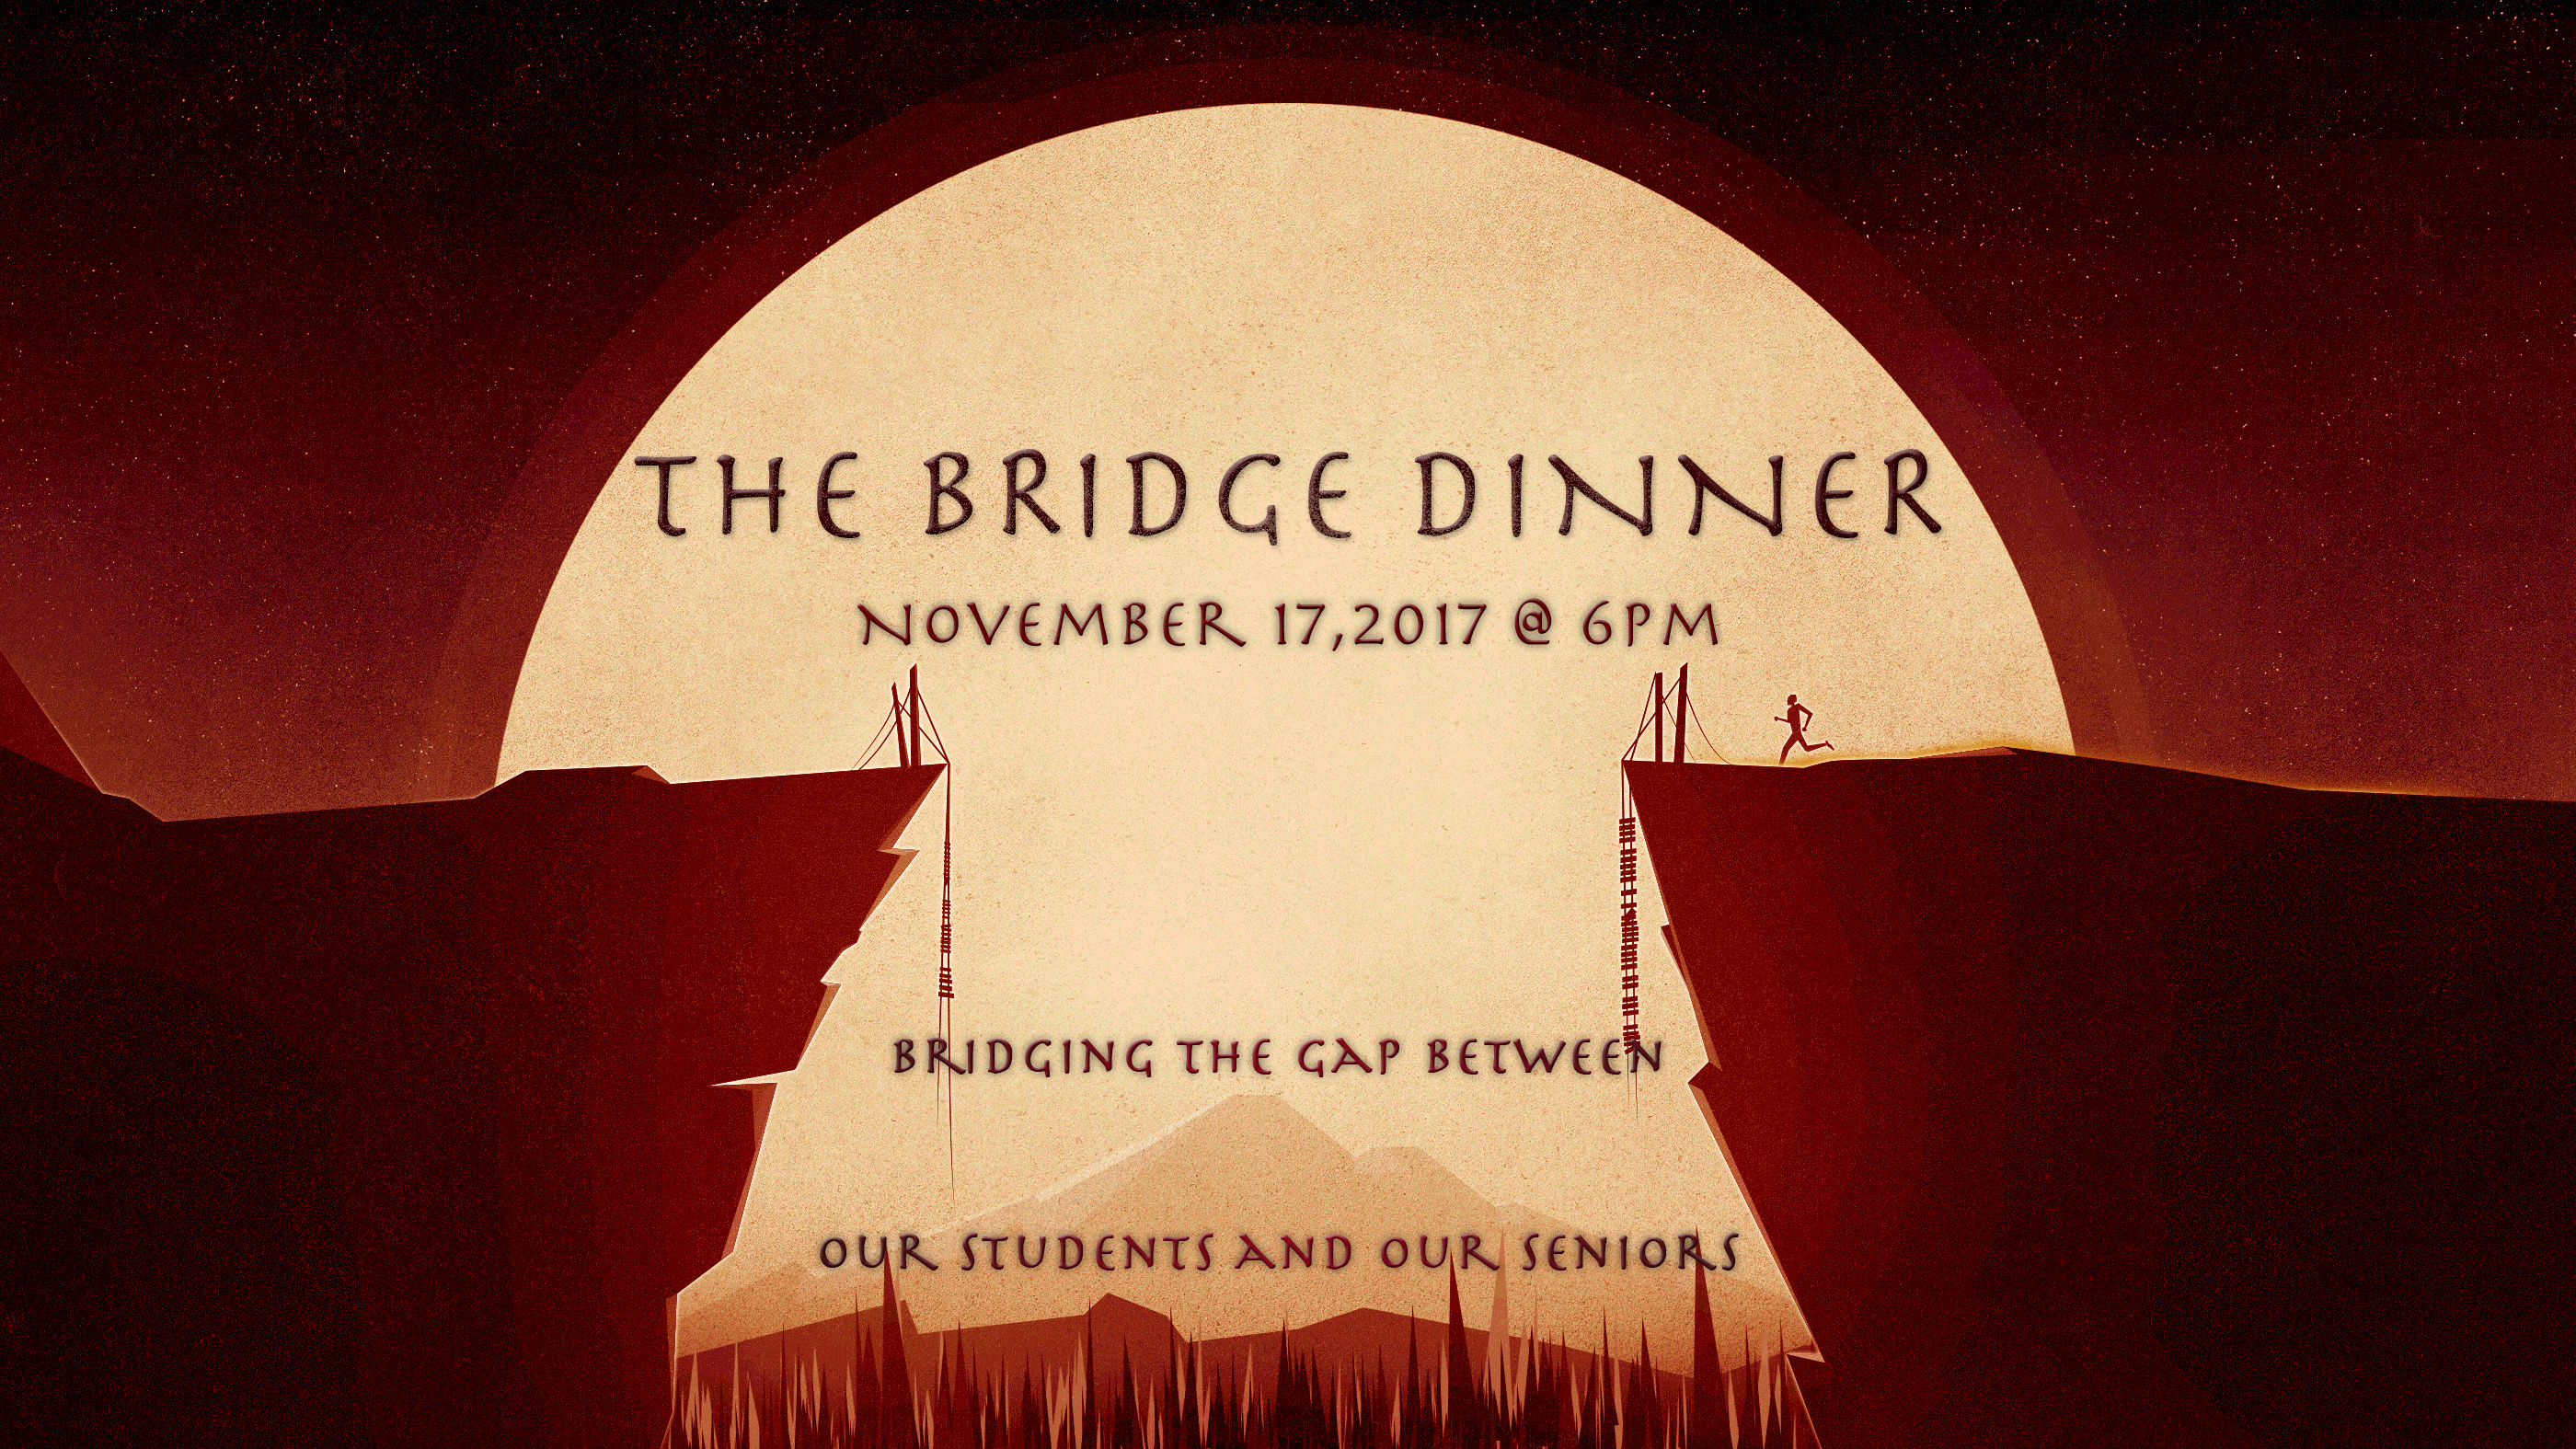 The bridge dinner